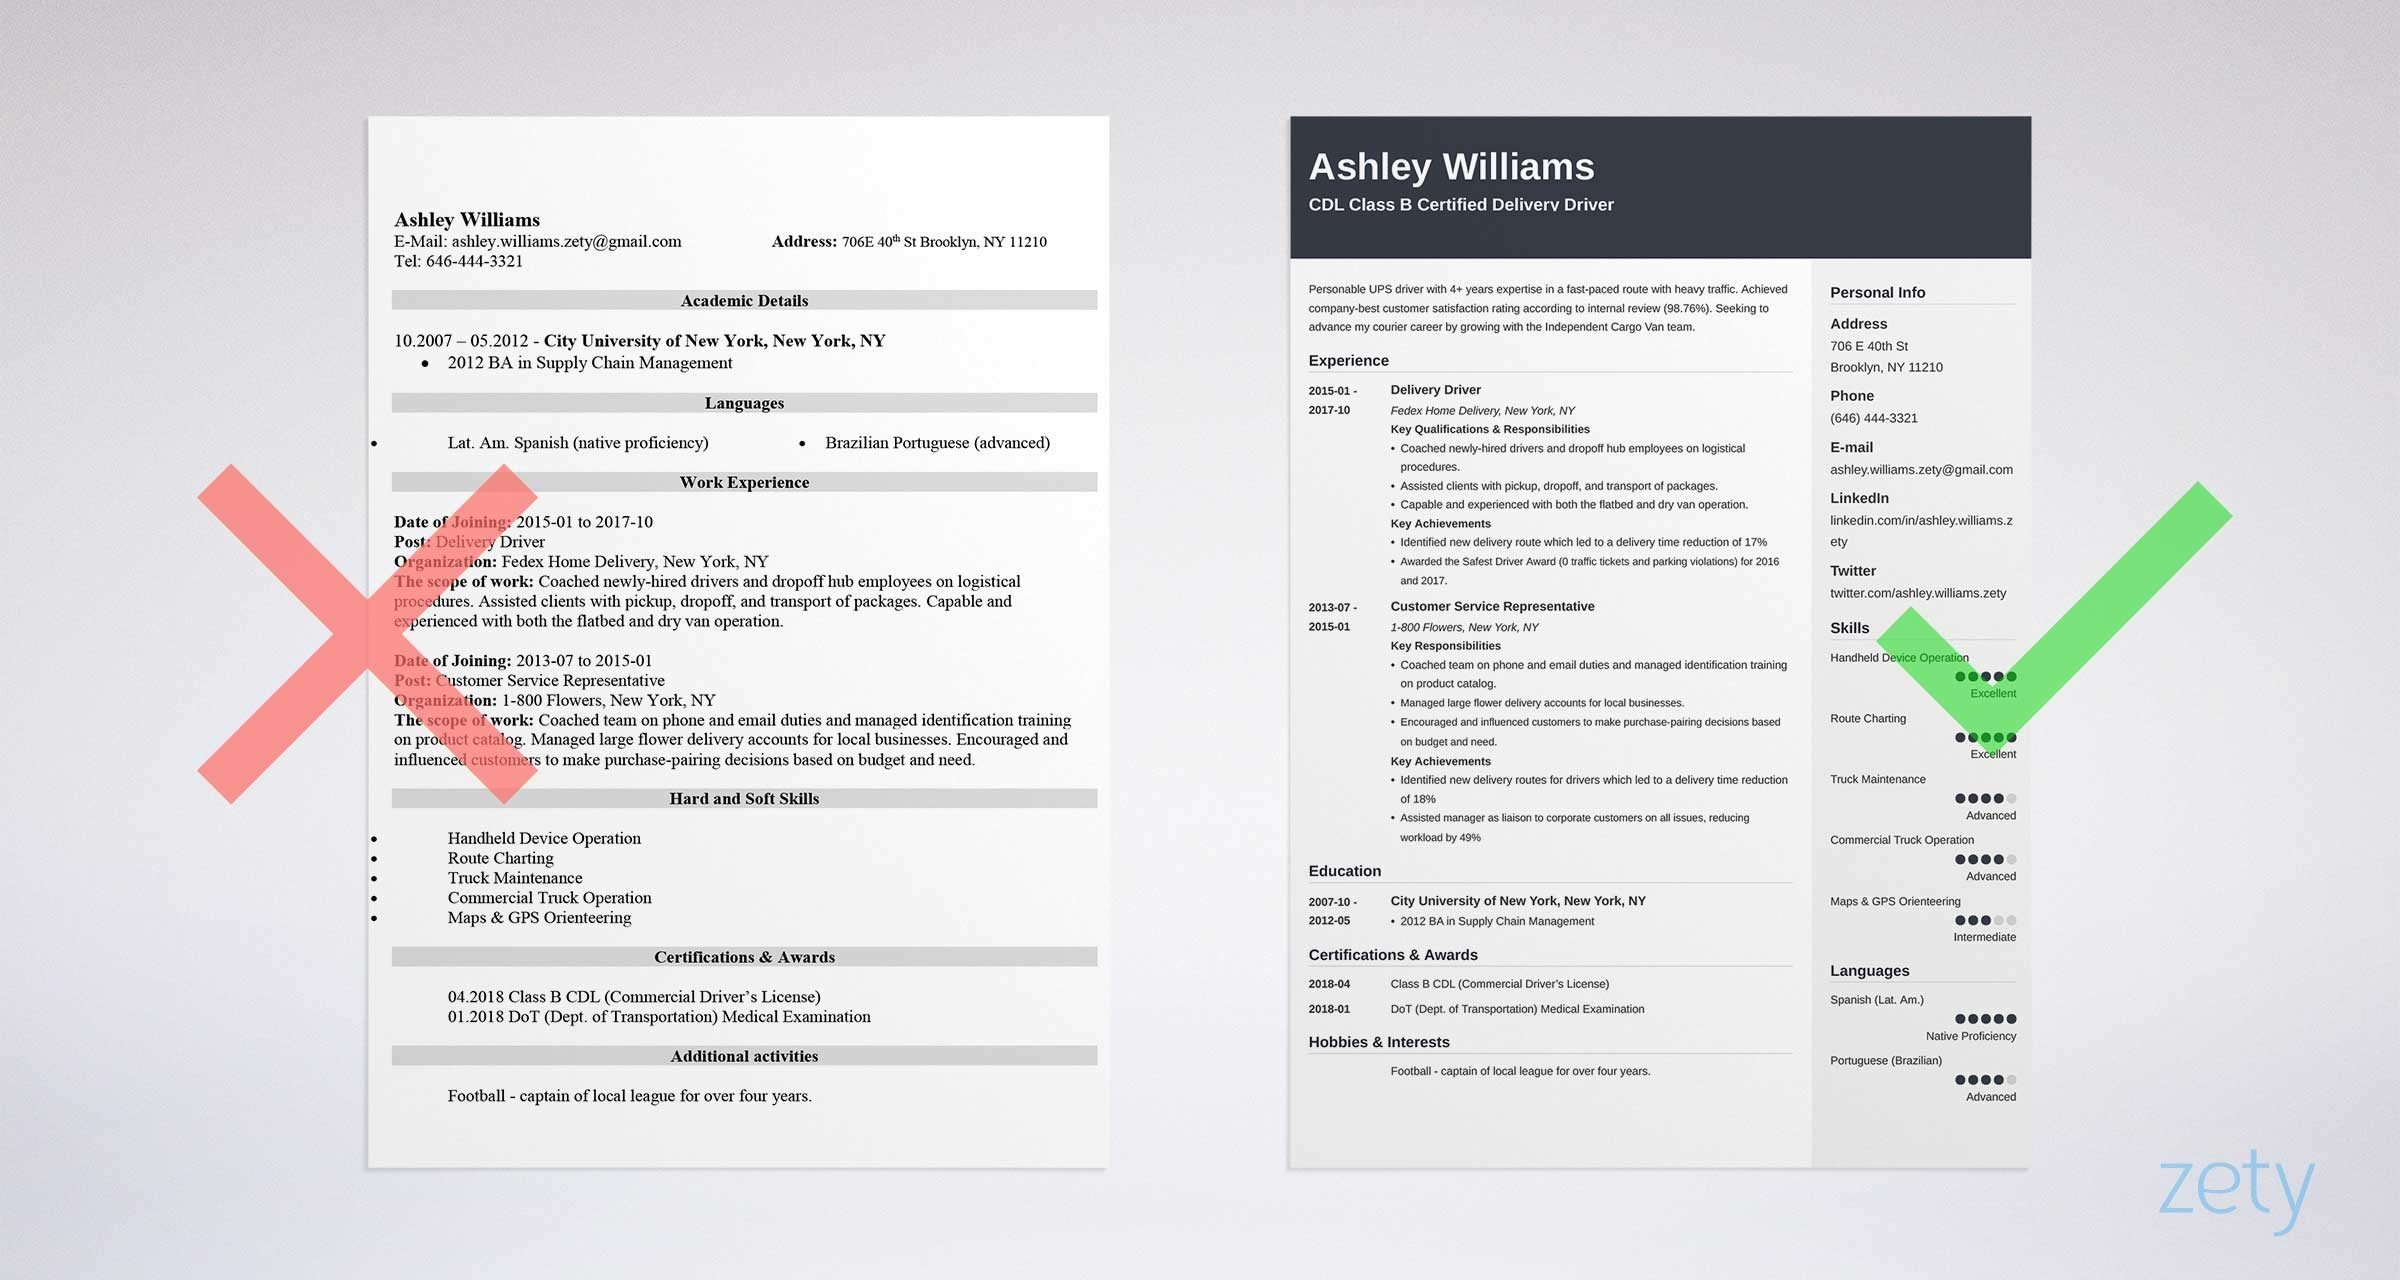 delivery driver resume sample objective skills duties another word for example student Resume Another Word For Delivery Driver For Resume